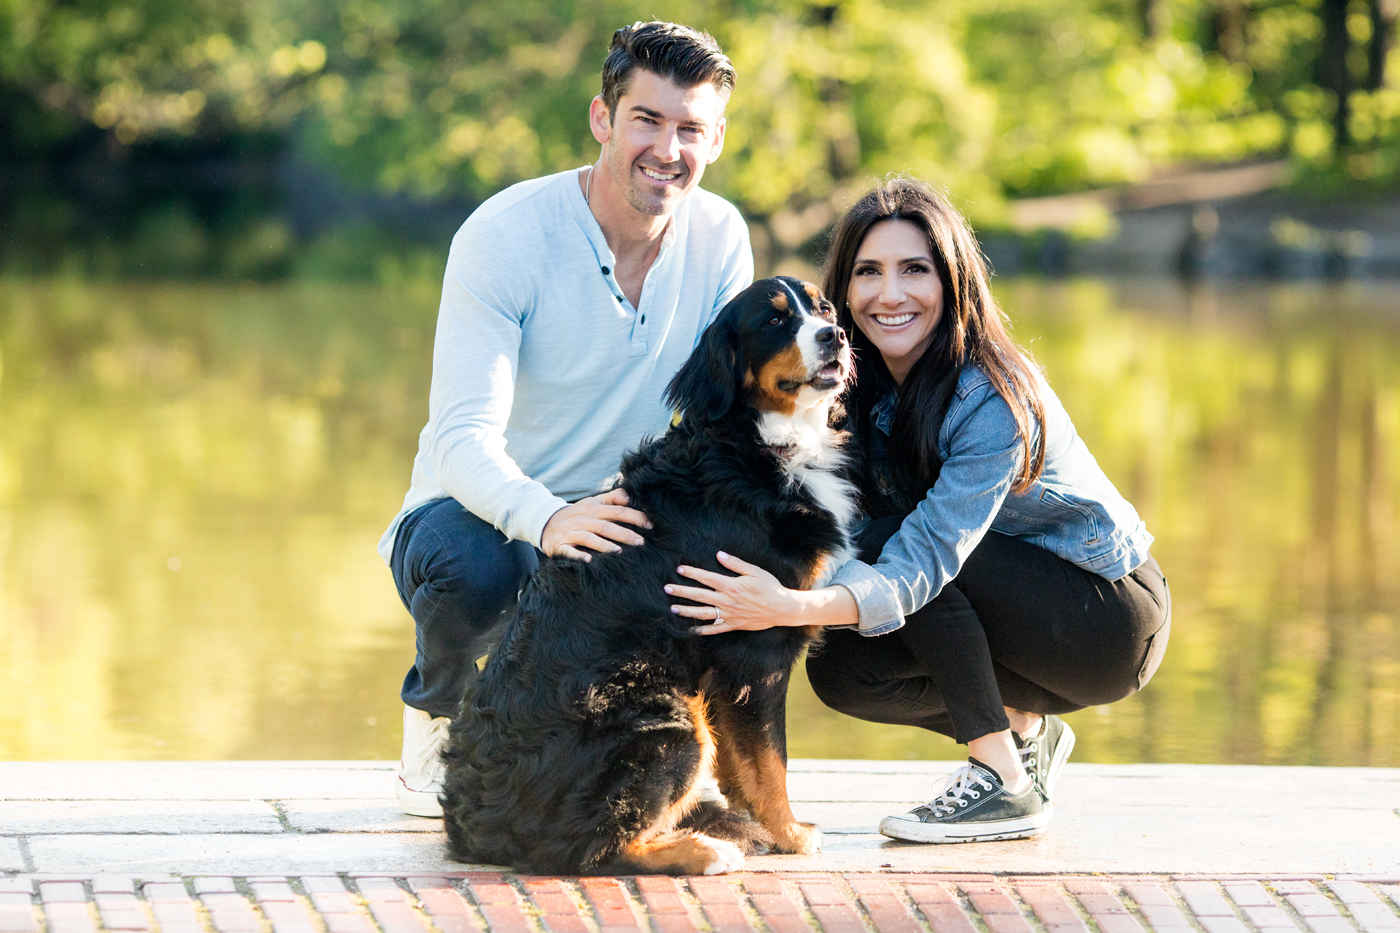 Central Park Engagement | NYC Engagement with Dogs by Sara Kauss Photography